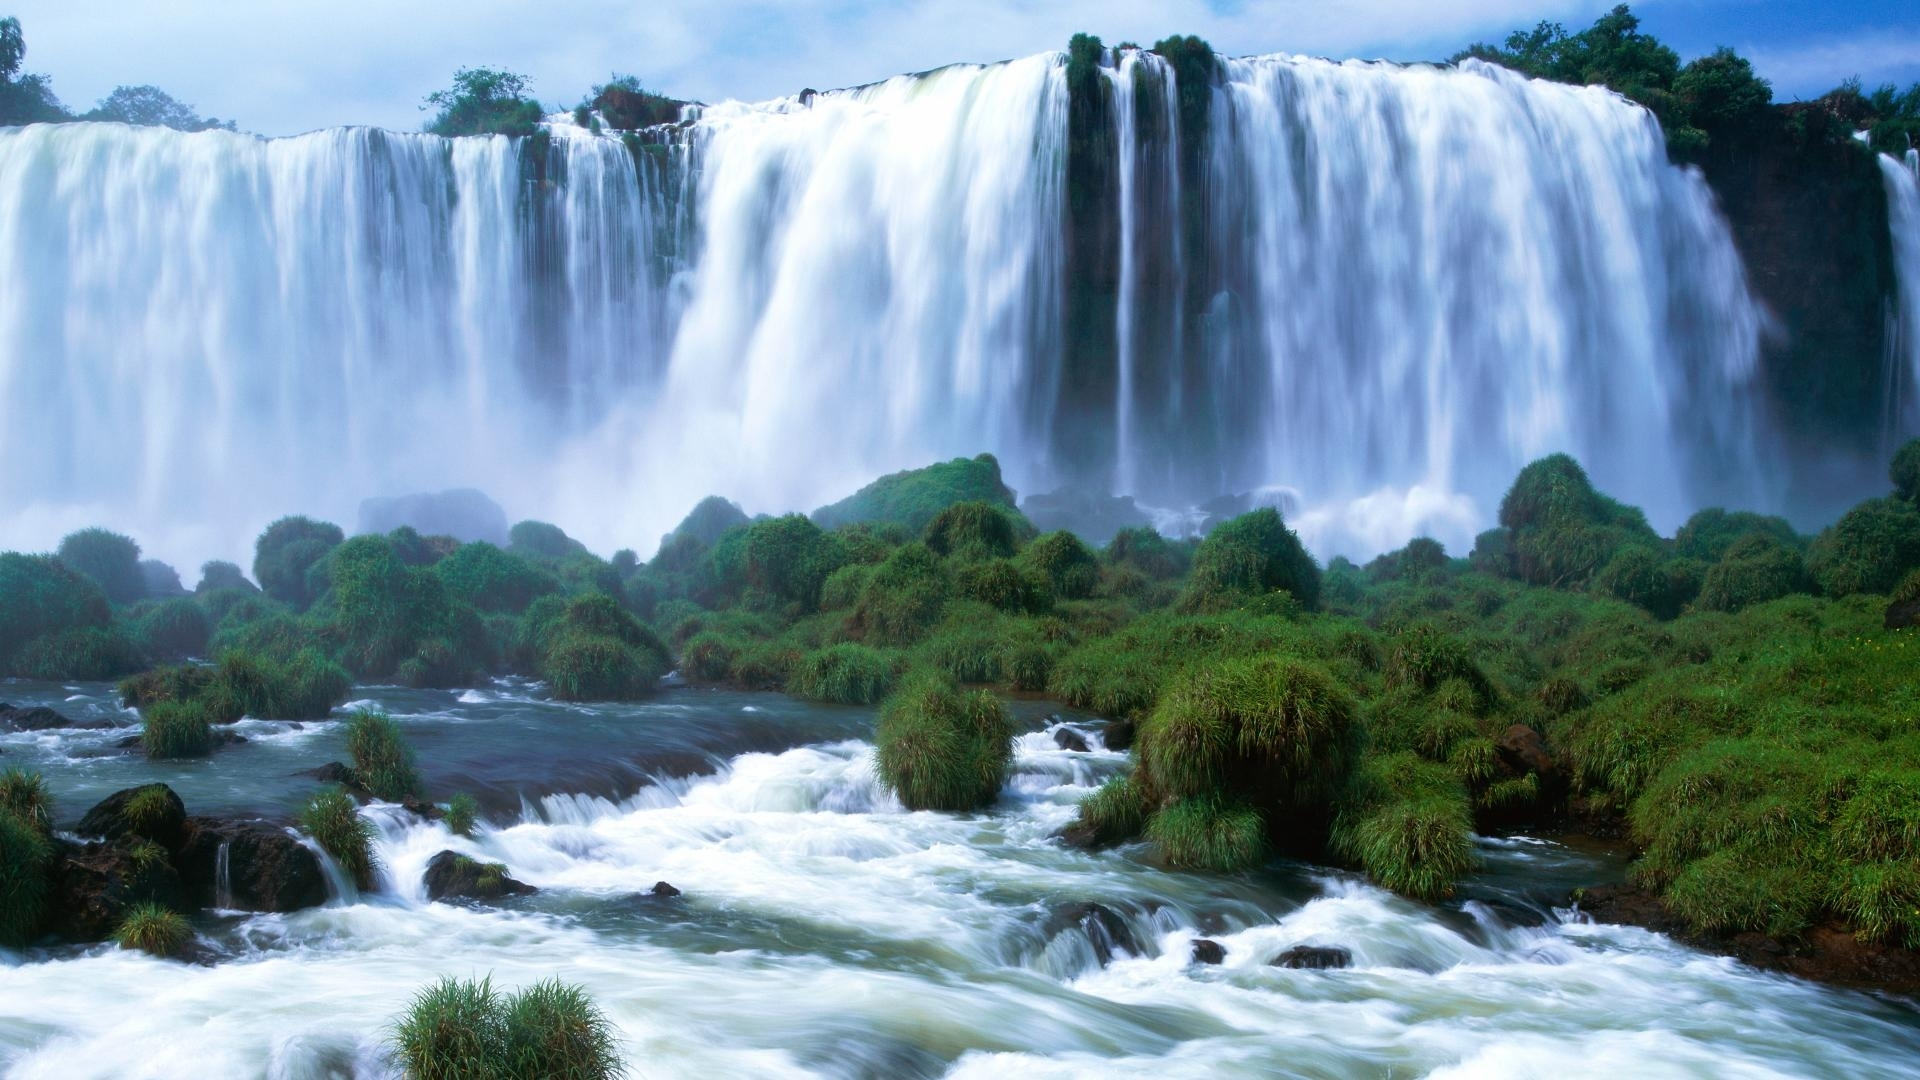 41318 download wallpaper Landscape, Waterfalls screensavers and pictures for free